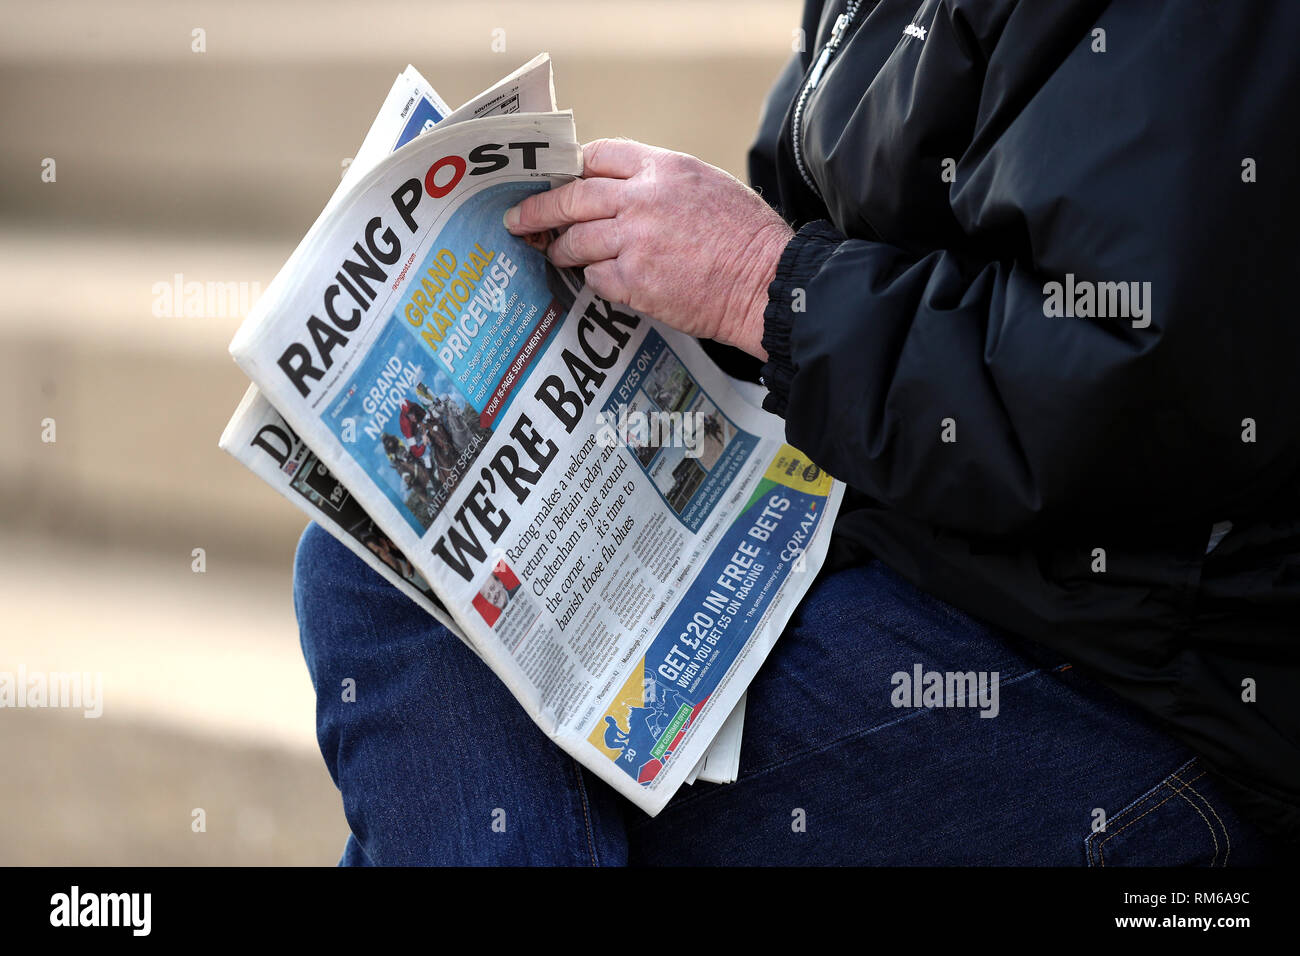 A racegoer reads the Racing Post featuring the front page headline 'We're Back' during the Injured Jockeys Fund Charity Raceday at Plumpton Racecourse. - Stock Image